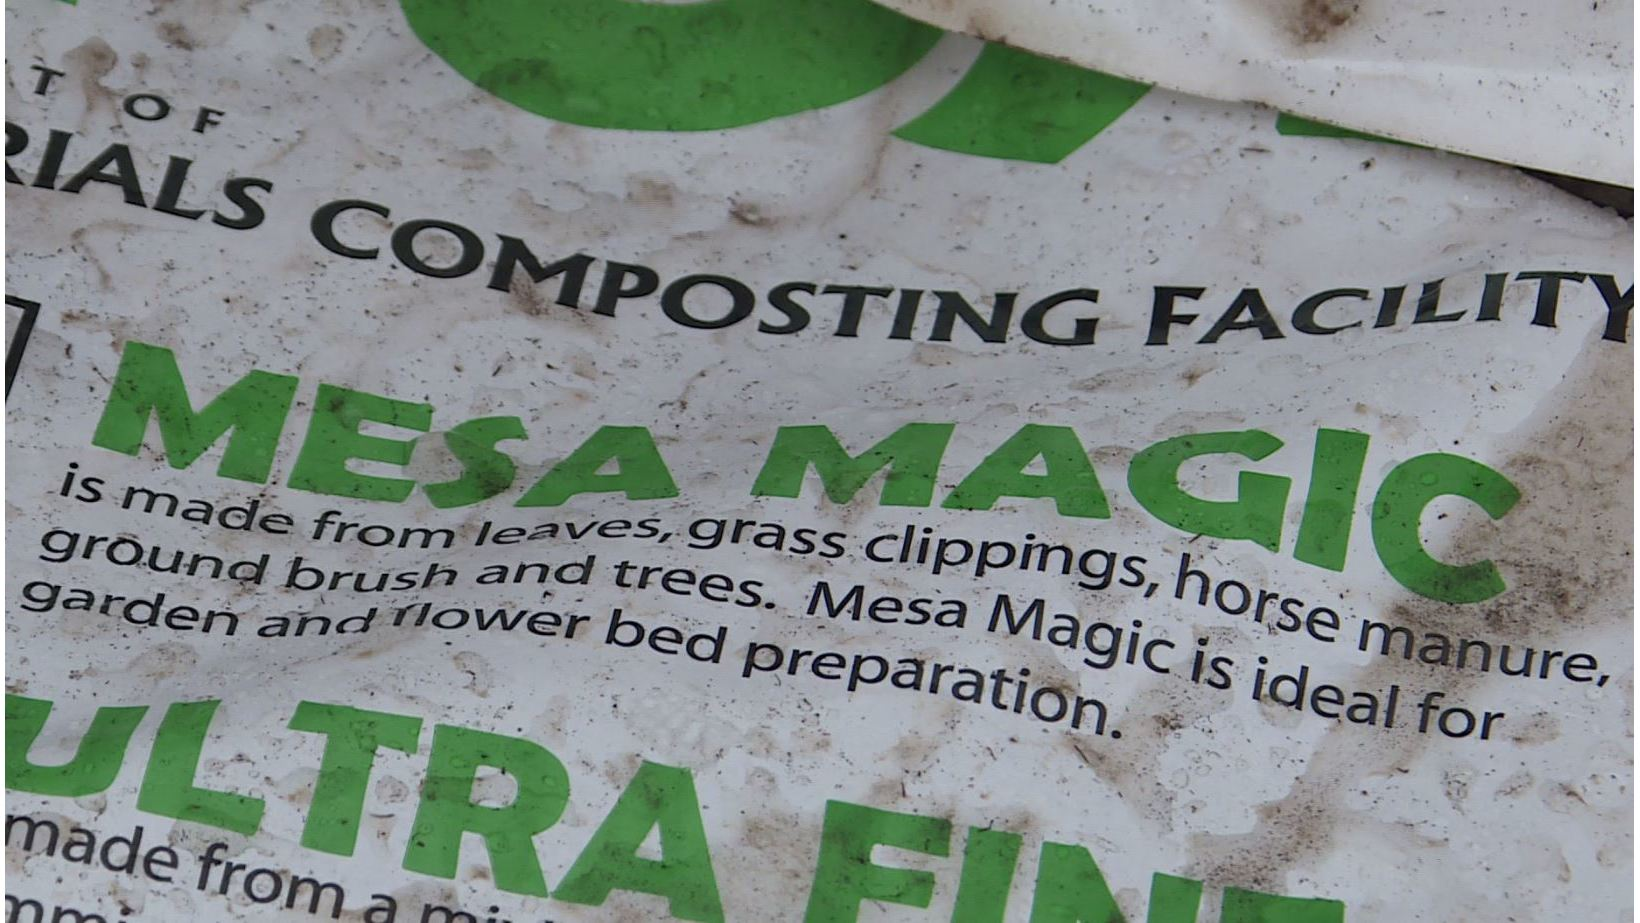 Magic_Mesa_Compost_Goes_on_Sale_0_20180316013248